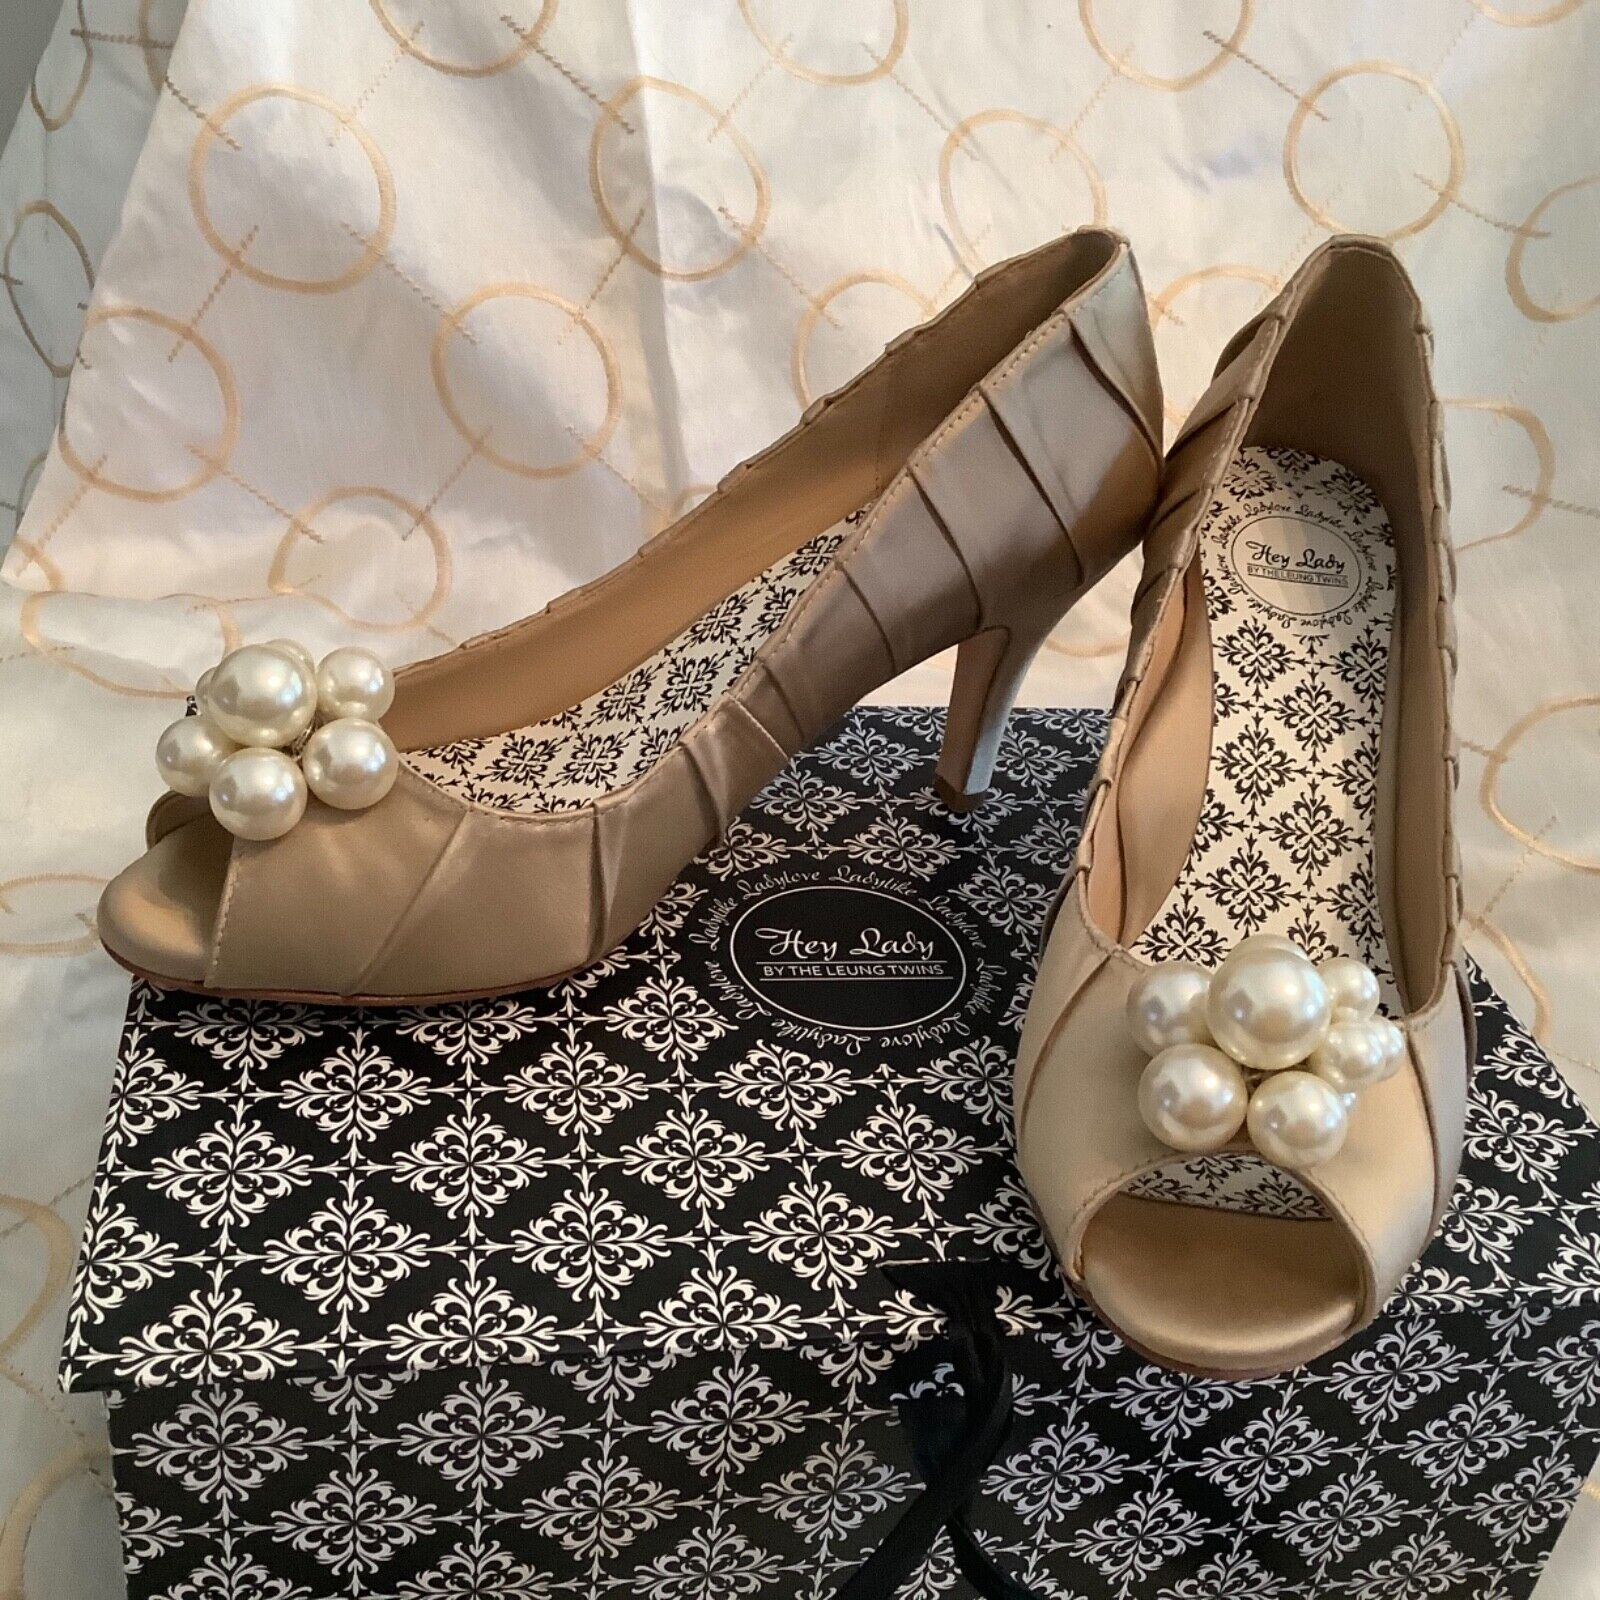 Hey Lady COMFORTABLE Wedding Formal Prom Dress Shoes Champagne Goggles 8.5